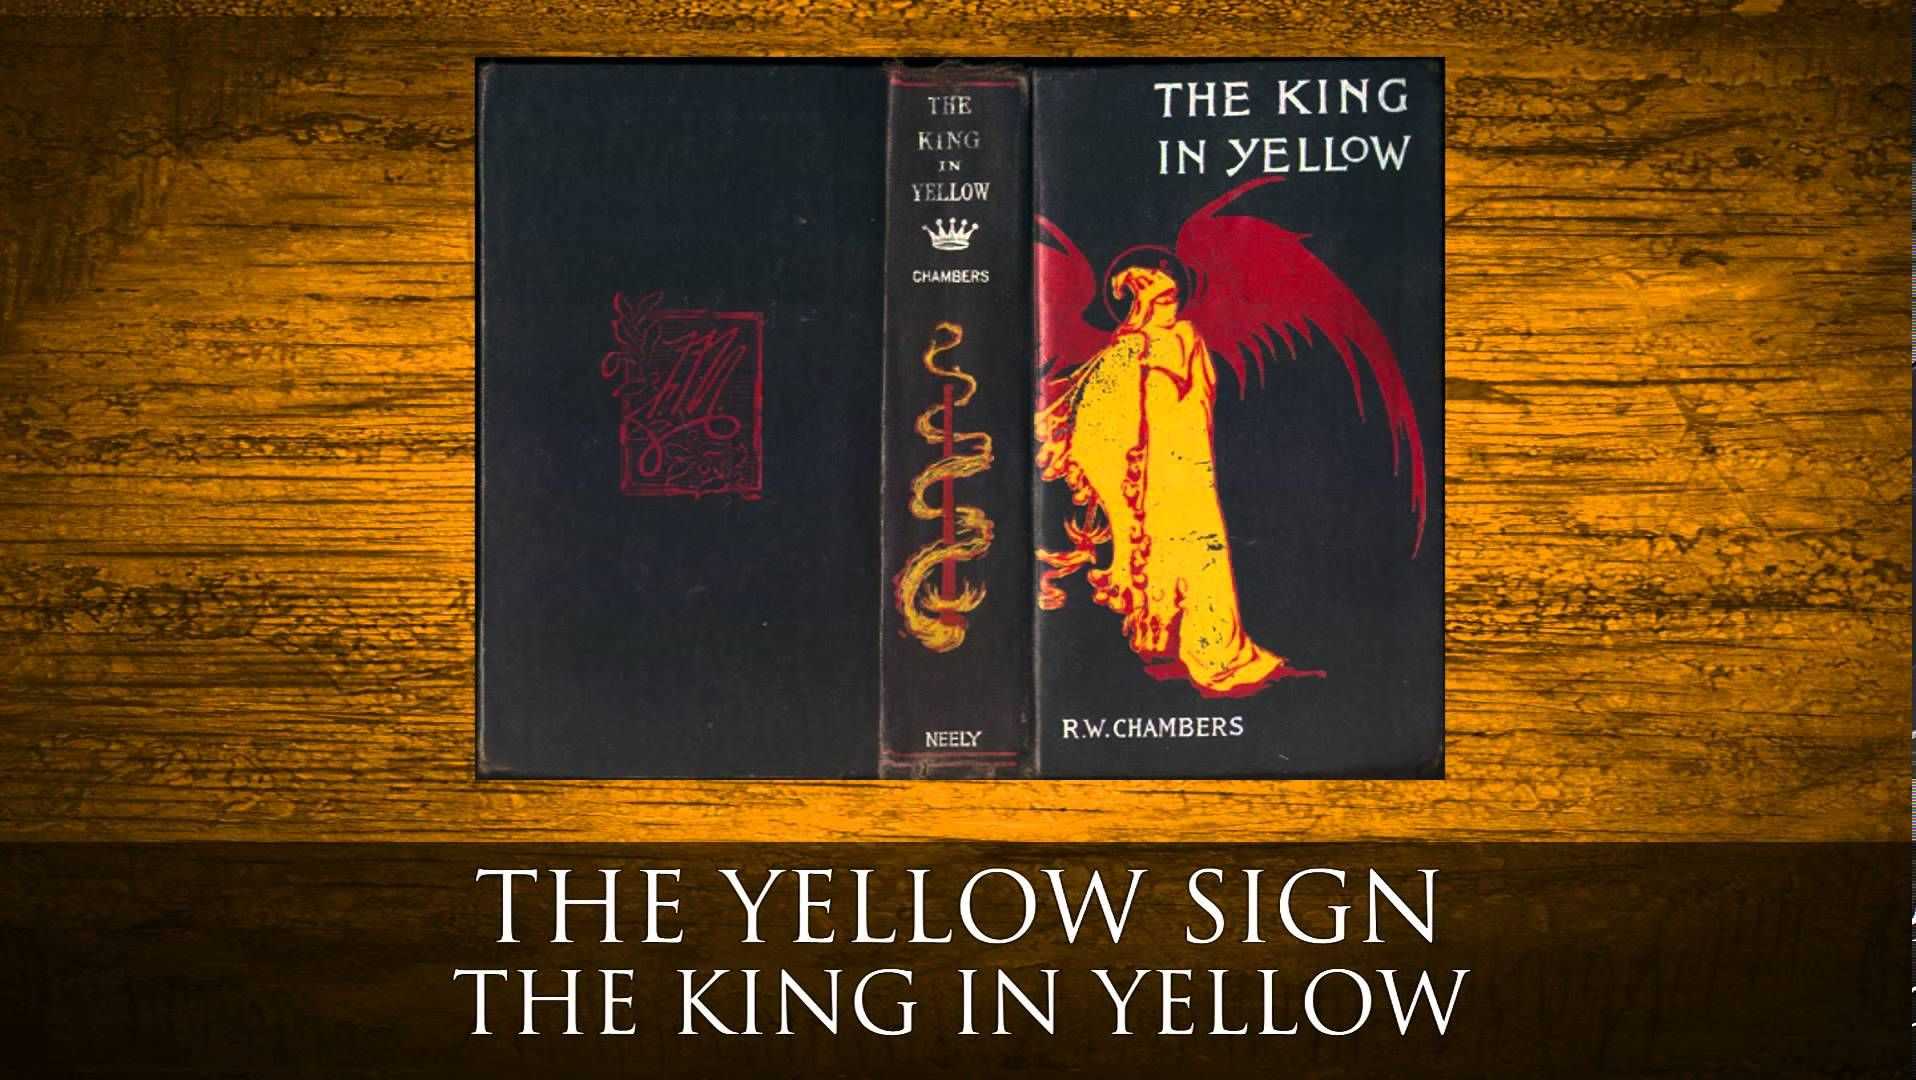 The Yellow Sign - The King in Yellow by Robert W Chambers Audiobook